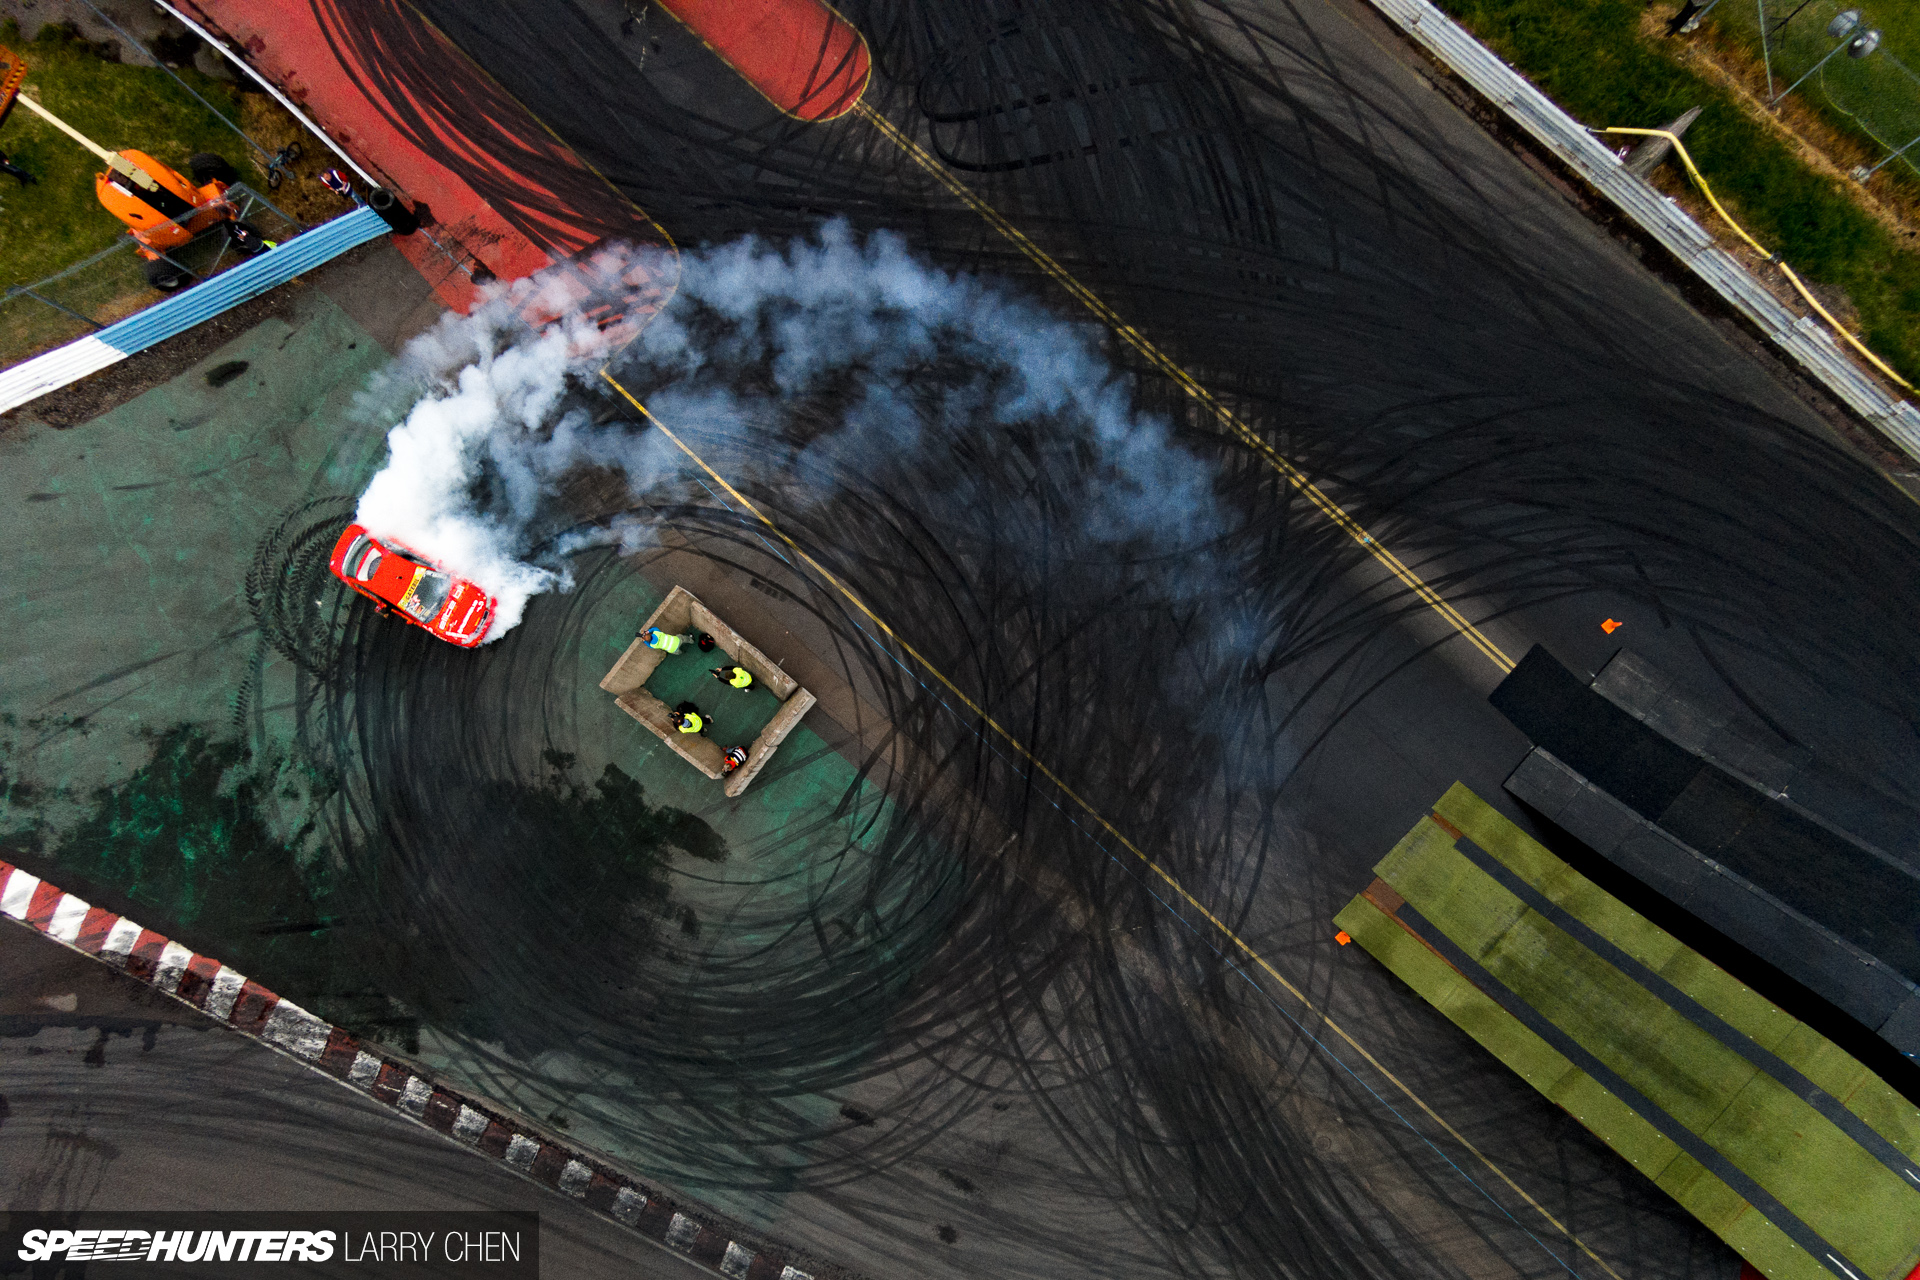 Larry_Chen_Speedhunters_gatebil_from_above-1